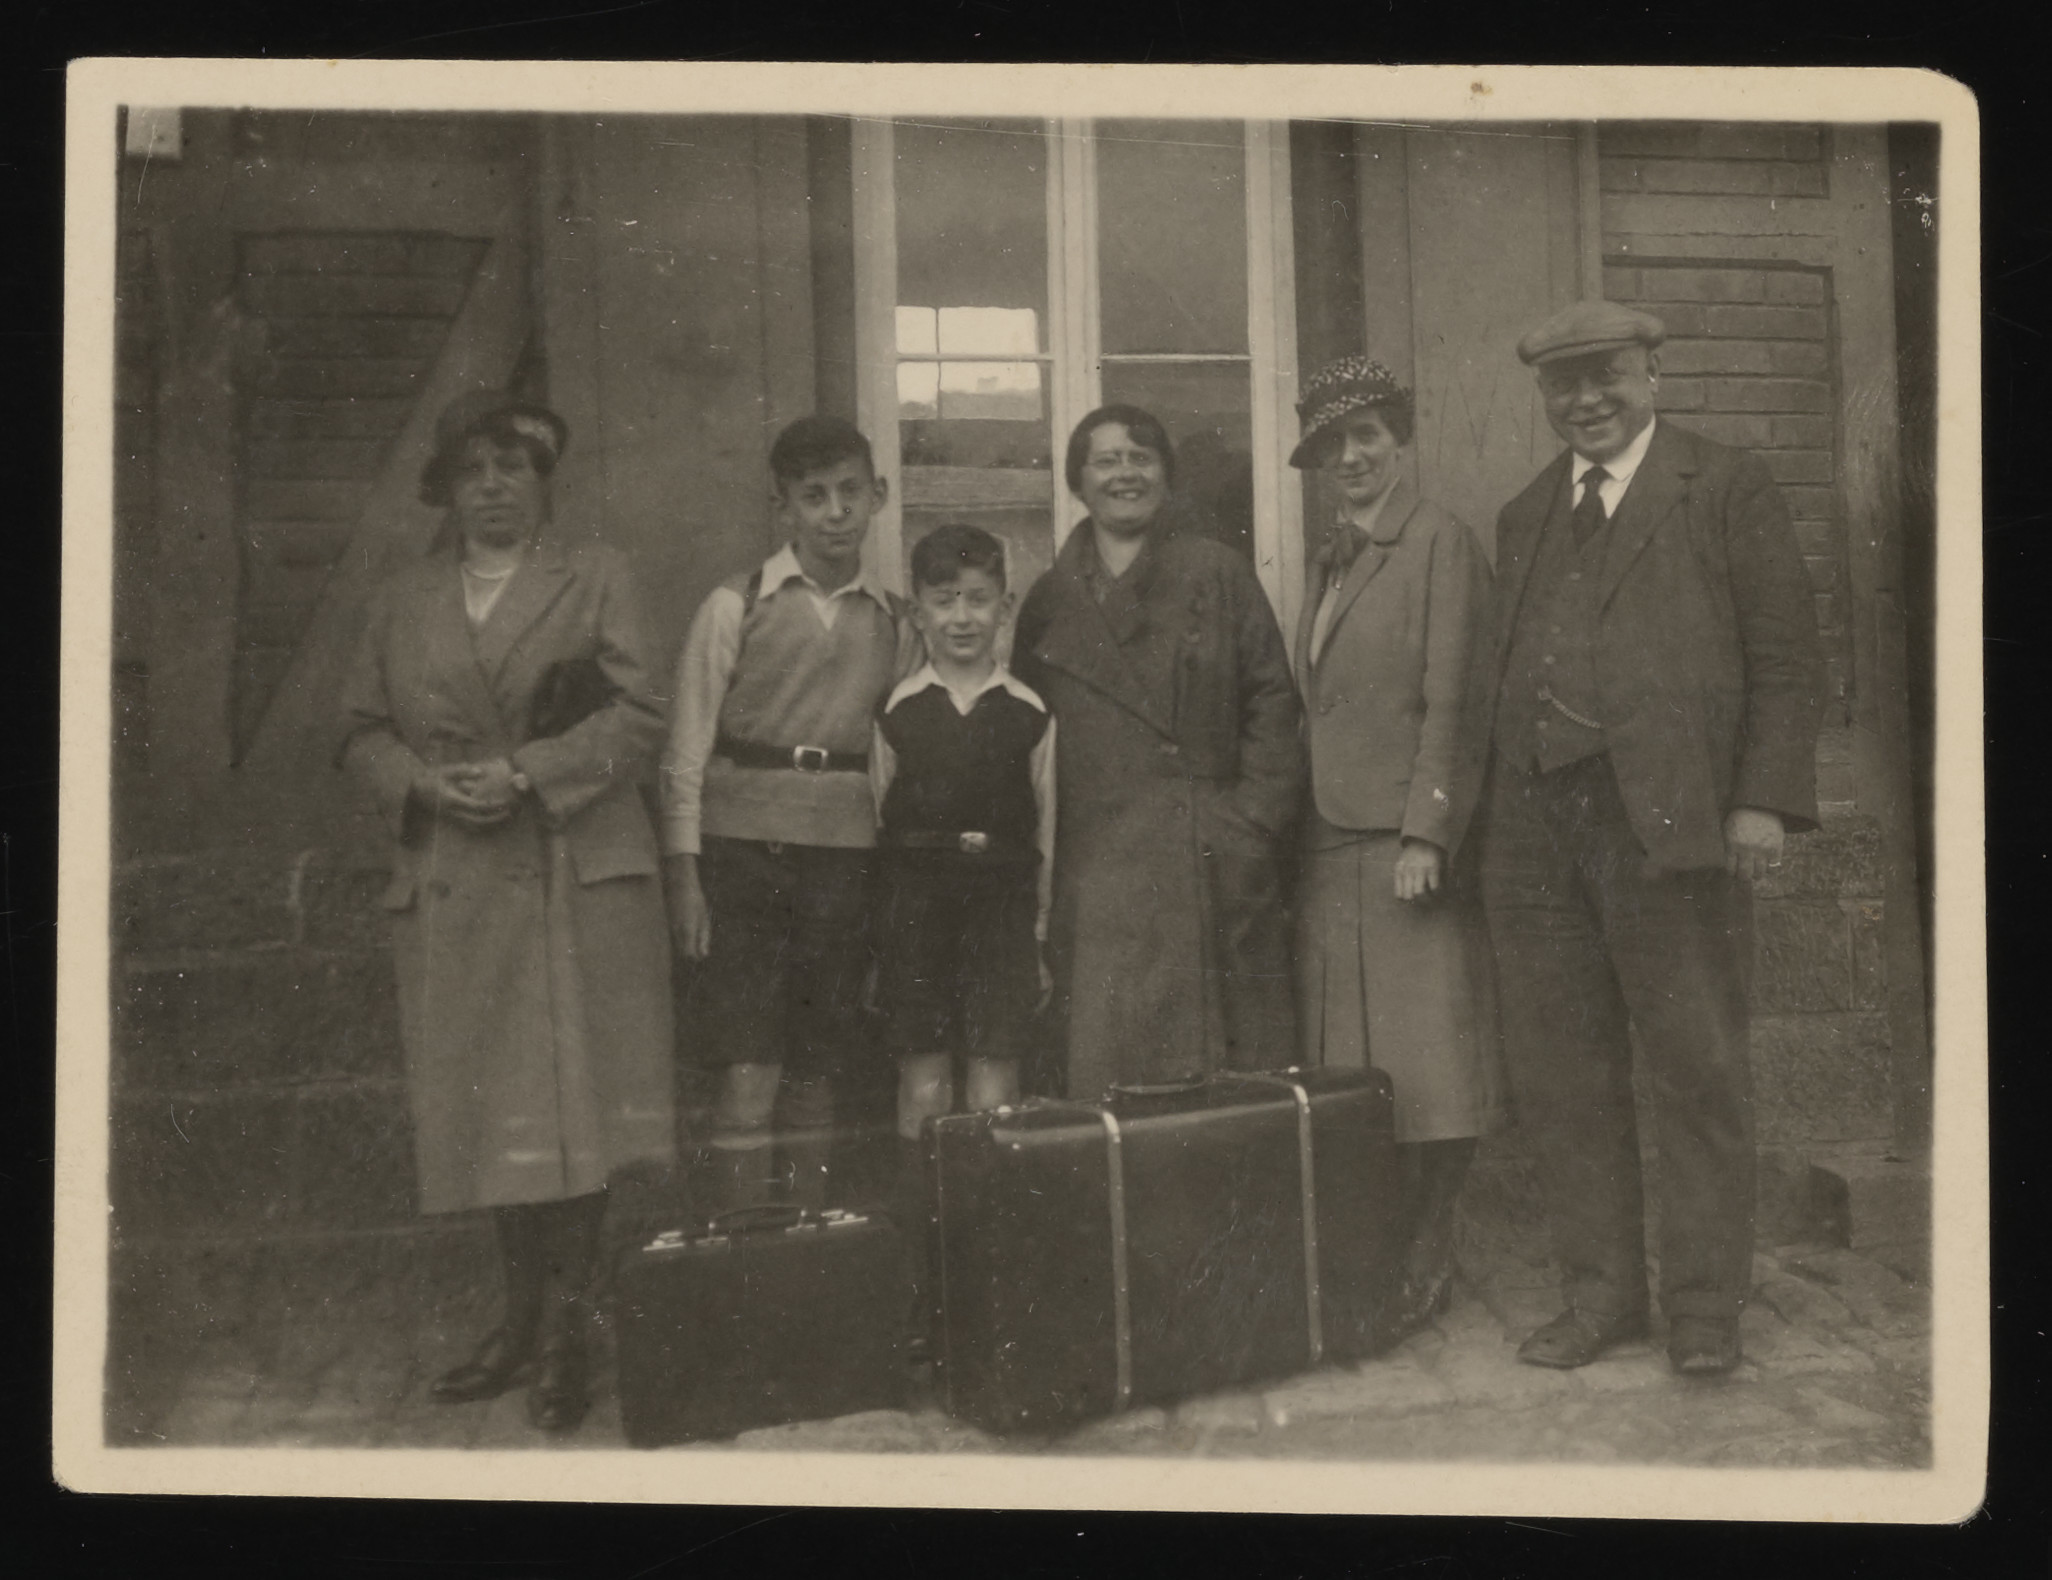 Members of the Dingfelder family standing with their suitcases on a railway platform.